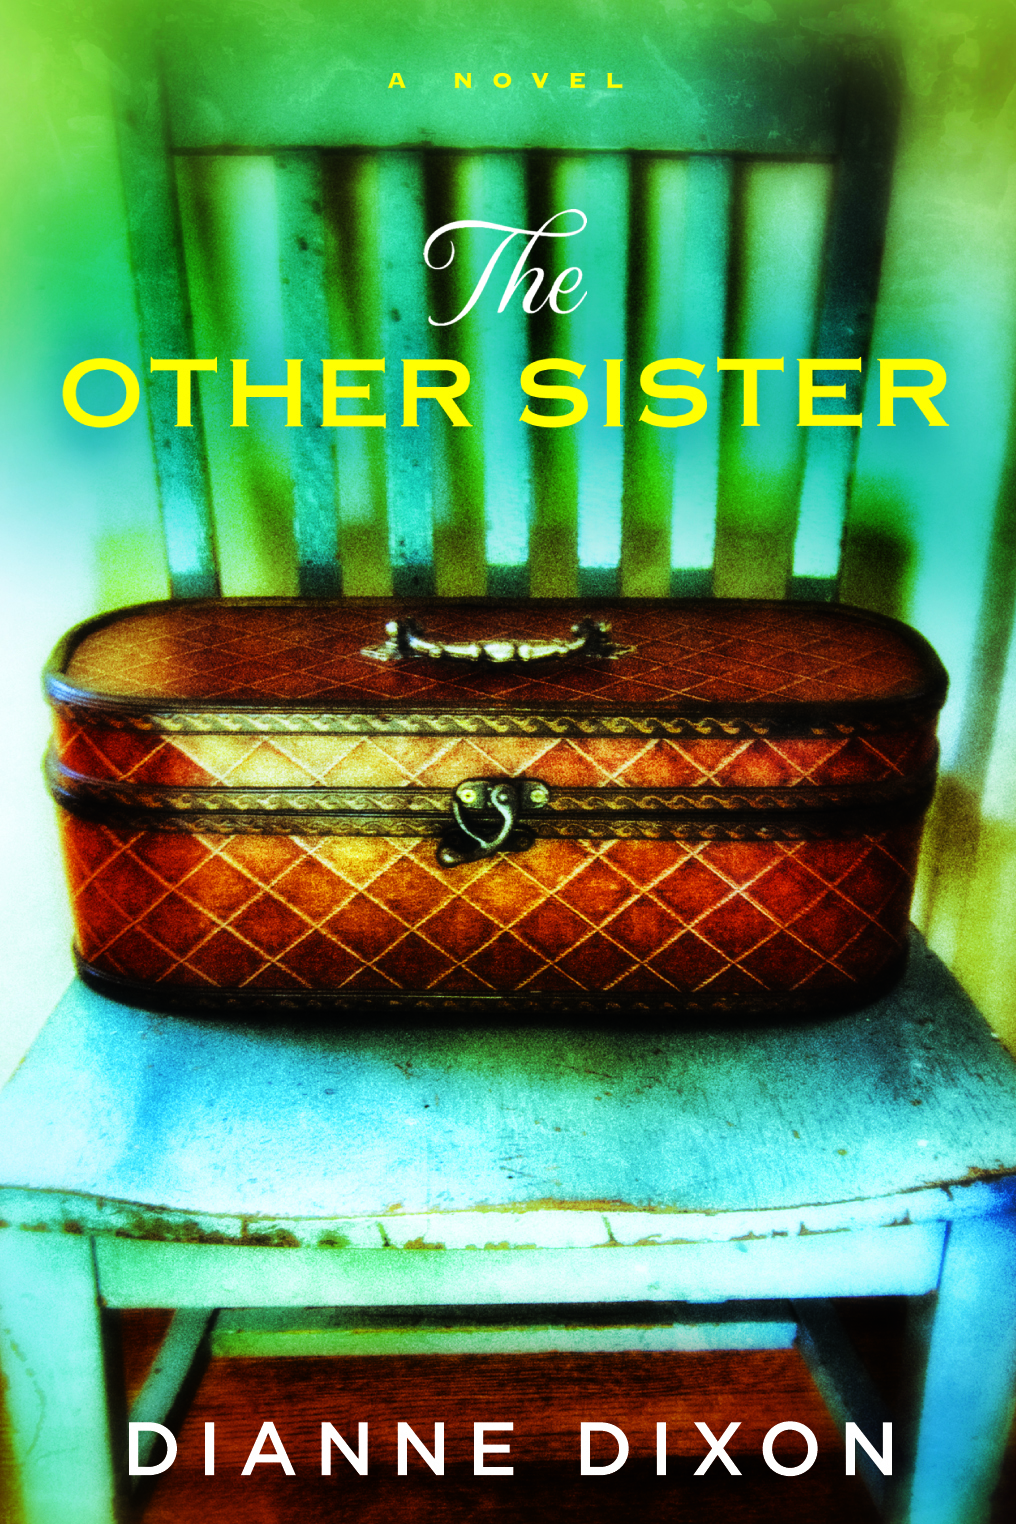 Dianne Dixon - Other Sister, The